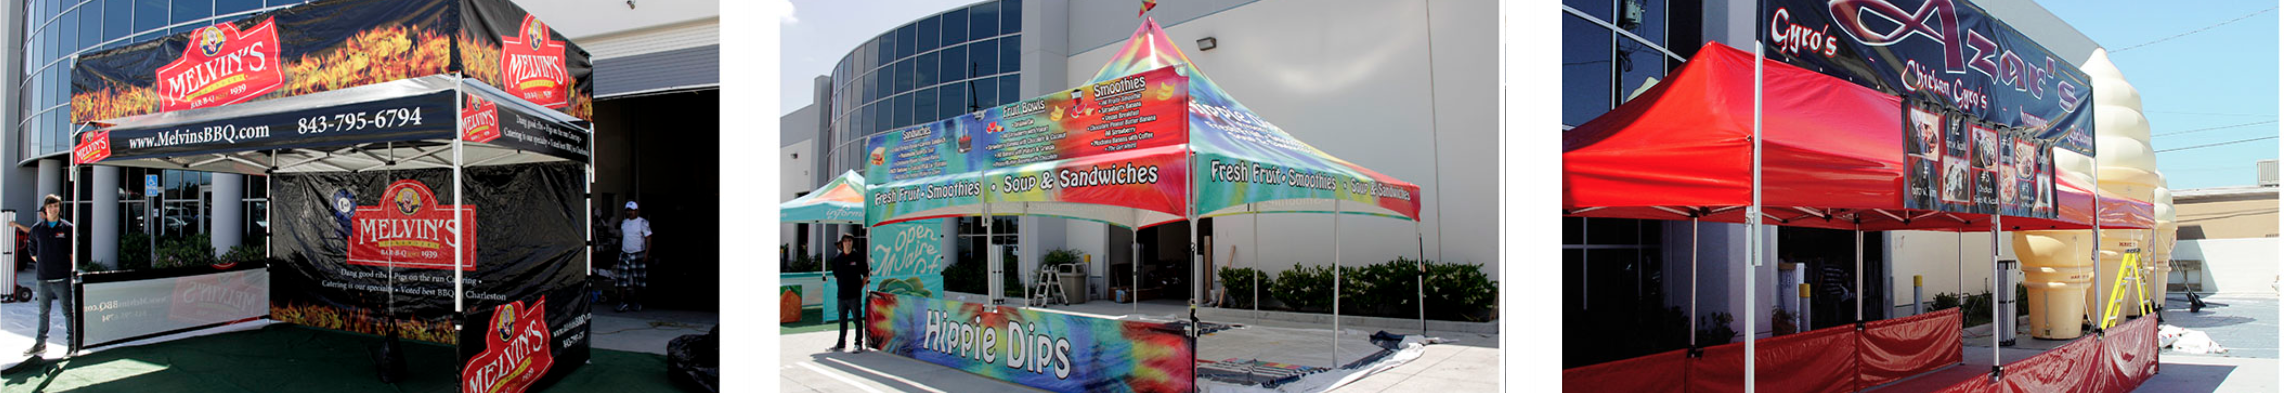 canopy banner on frame tent